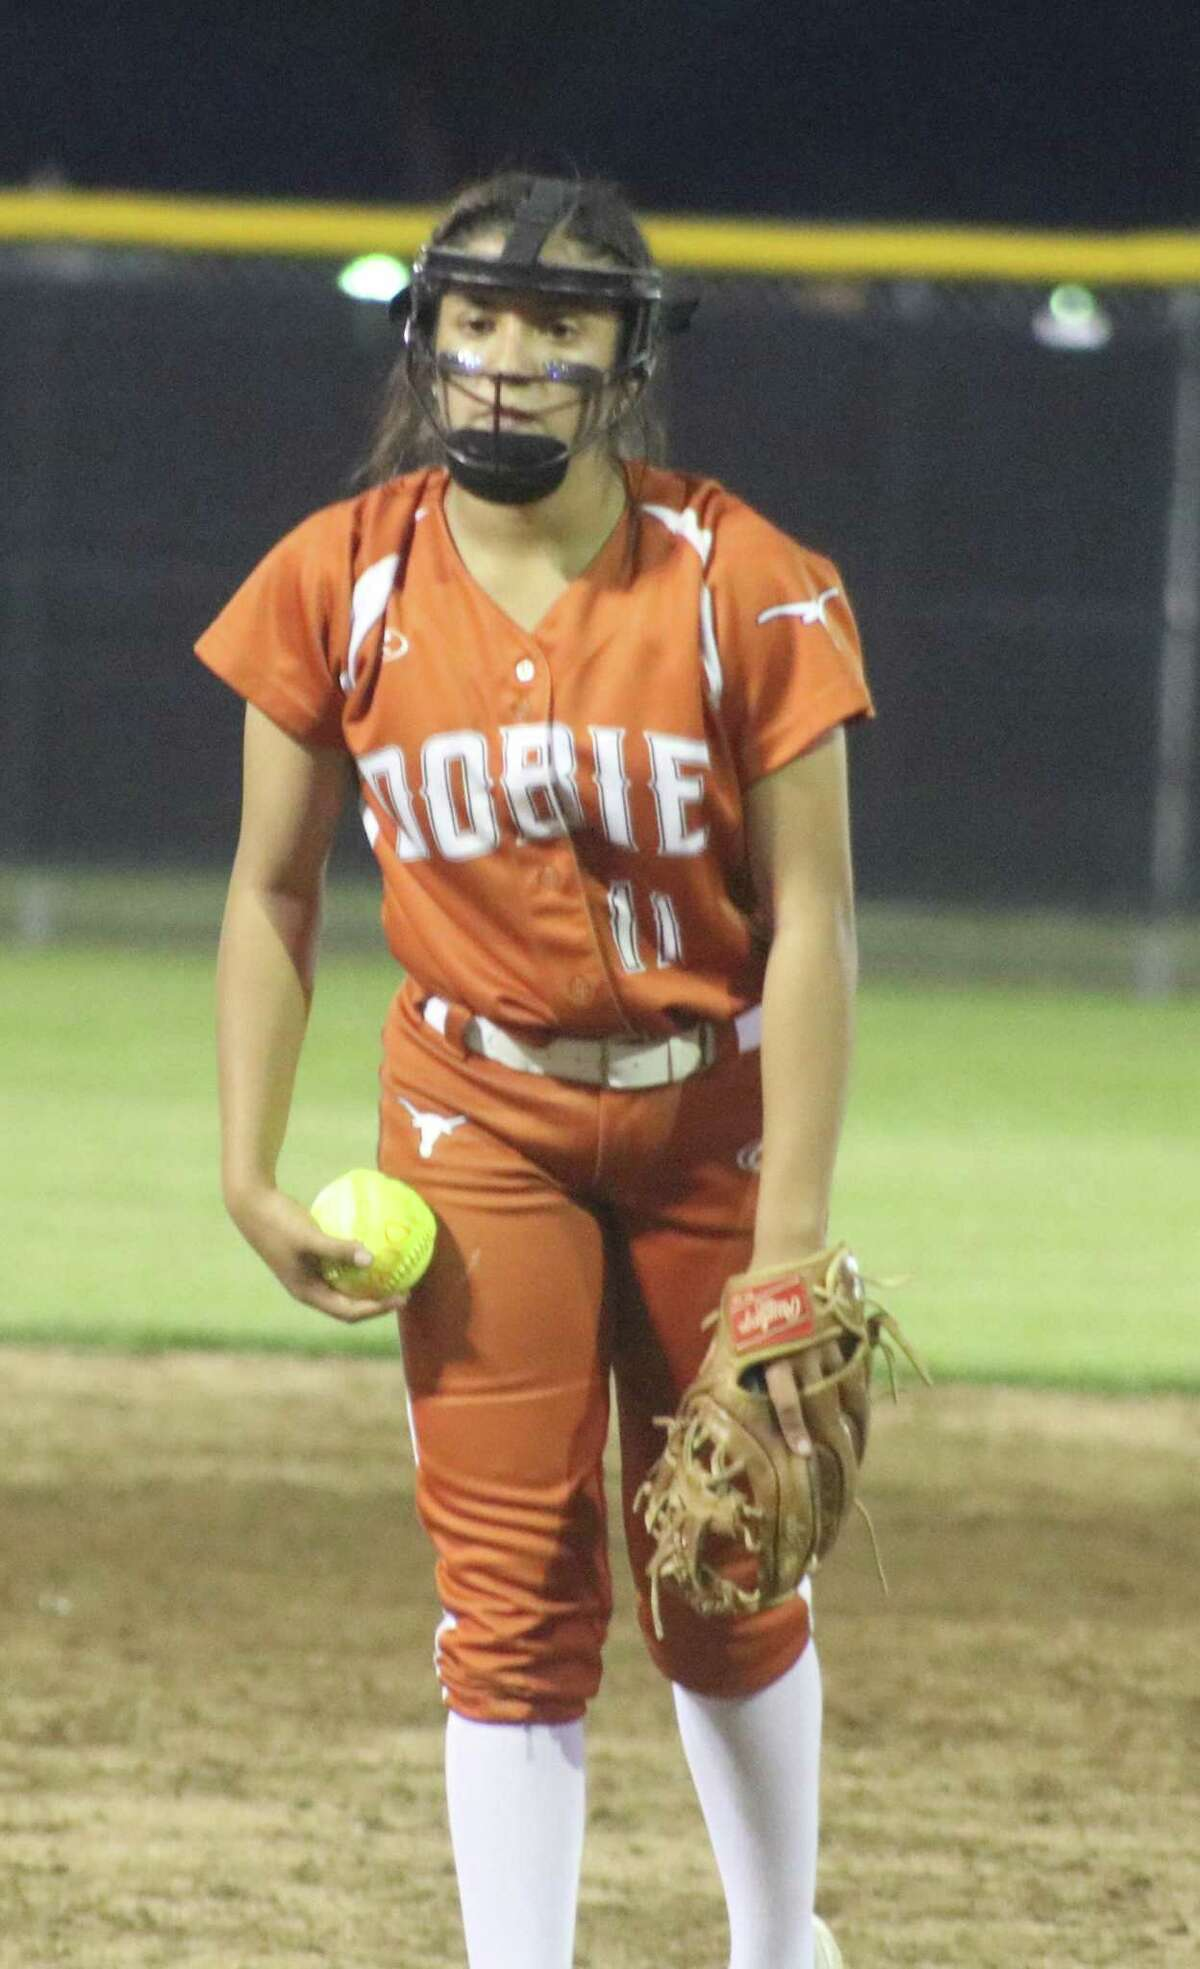 Winning pitcher Marissa Perla gets ready to work on the next Memorial batter as Tuesday night's big game swung towards its conclusion.